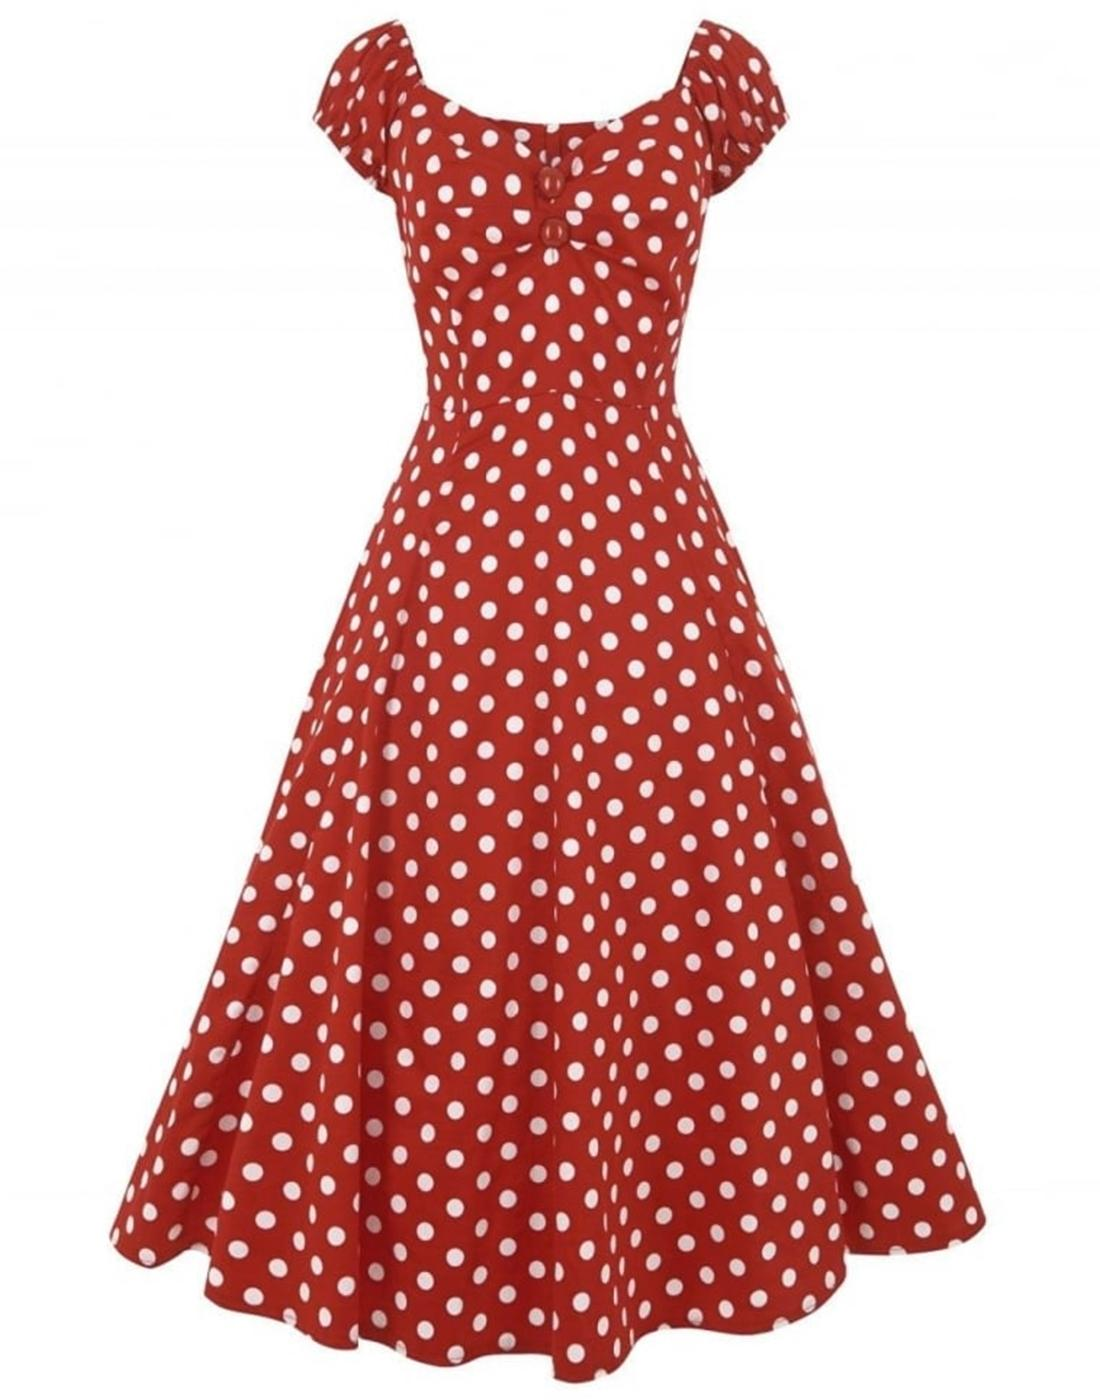 Dolores COLLECTIF 1950s Red Polka Dot Doll Dress